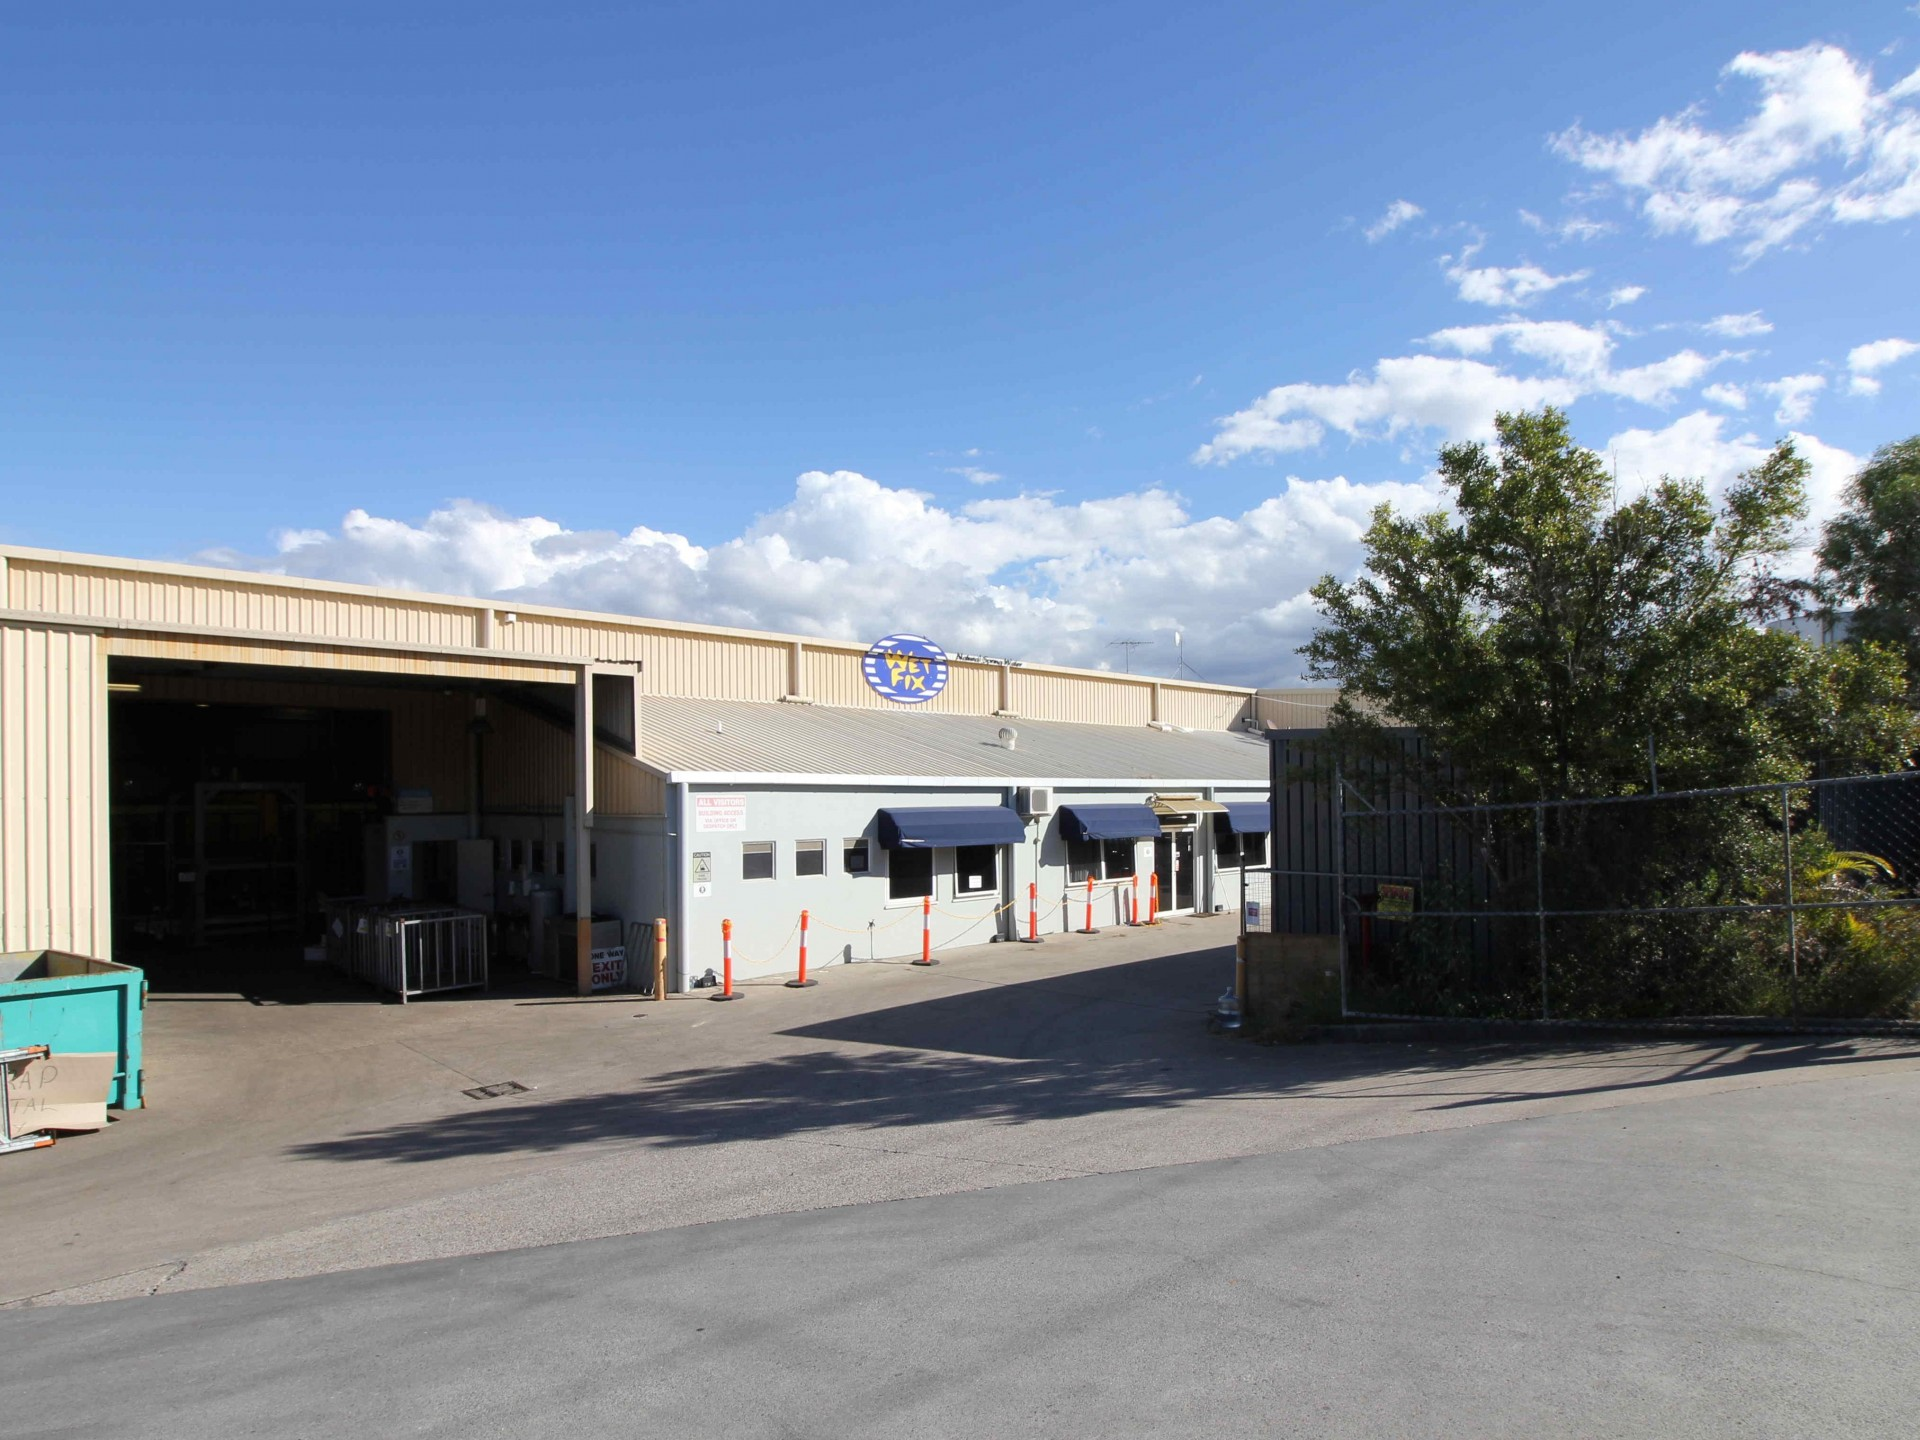 Industrial & Warehouse Property For Sale or Lease